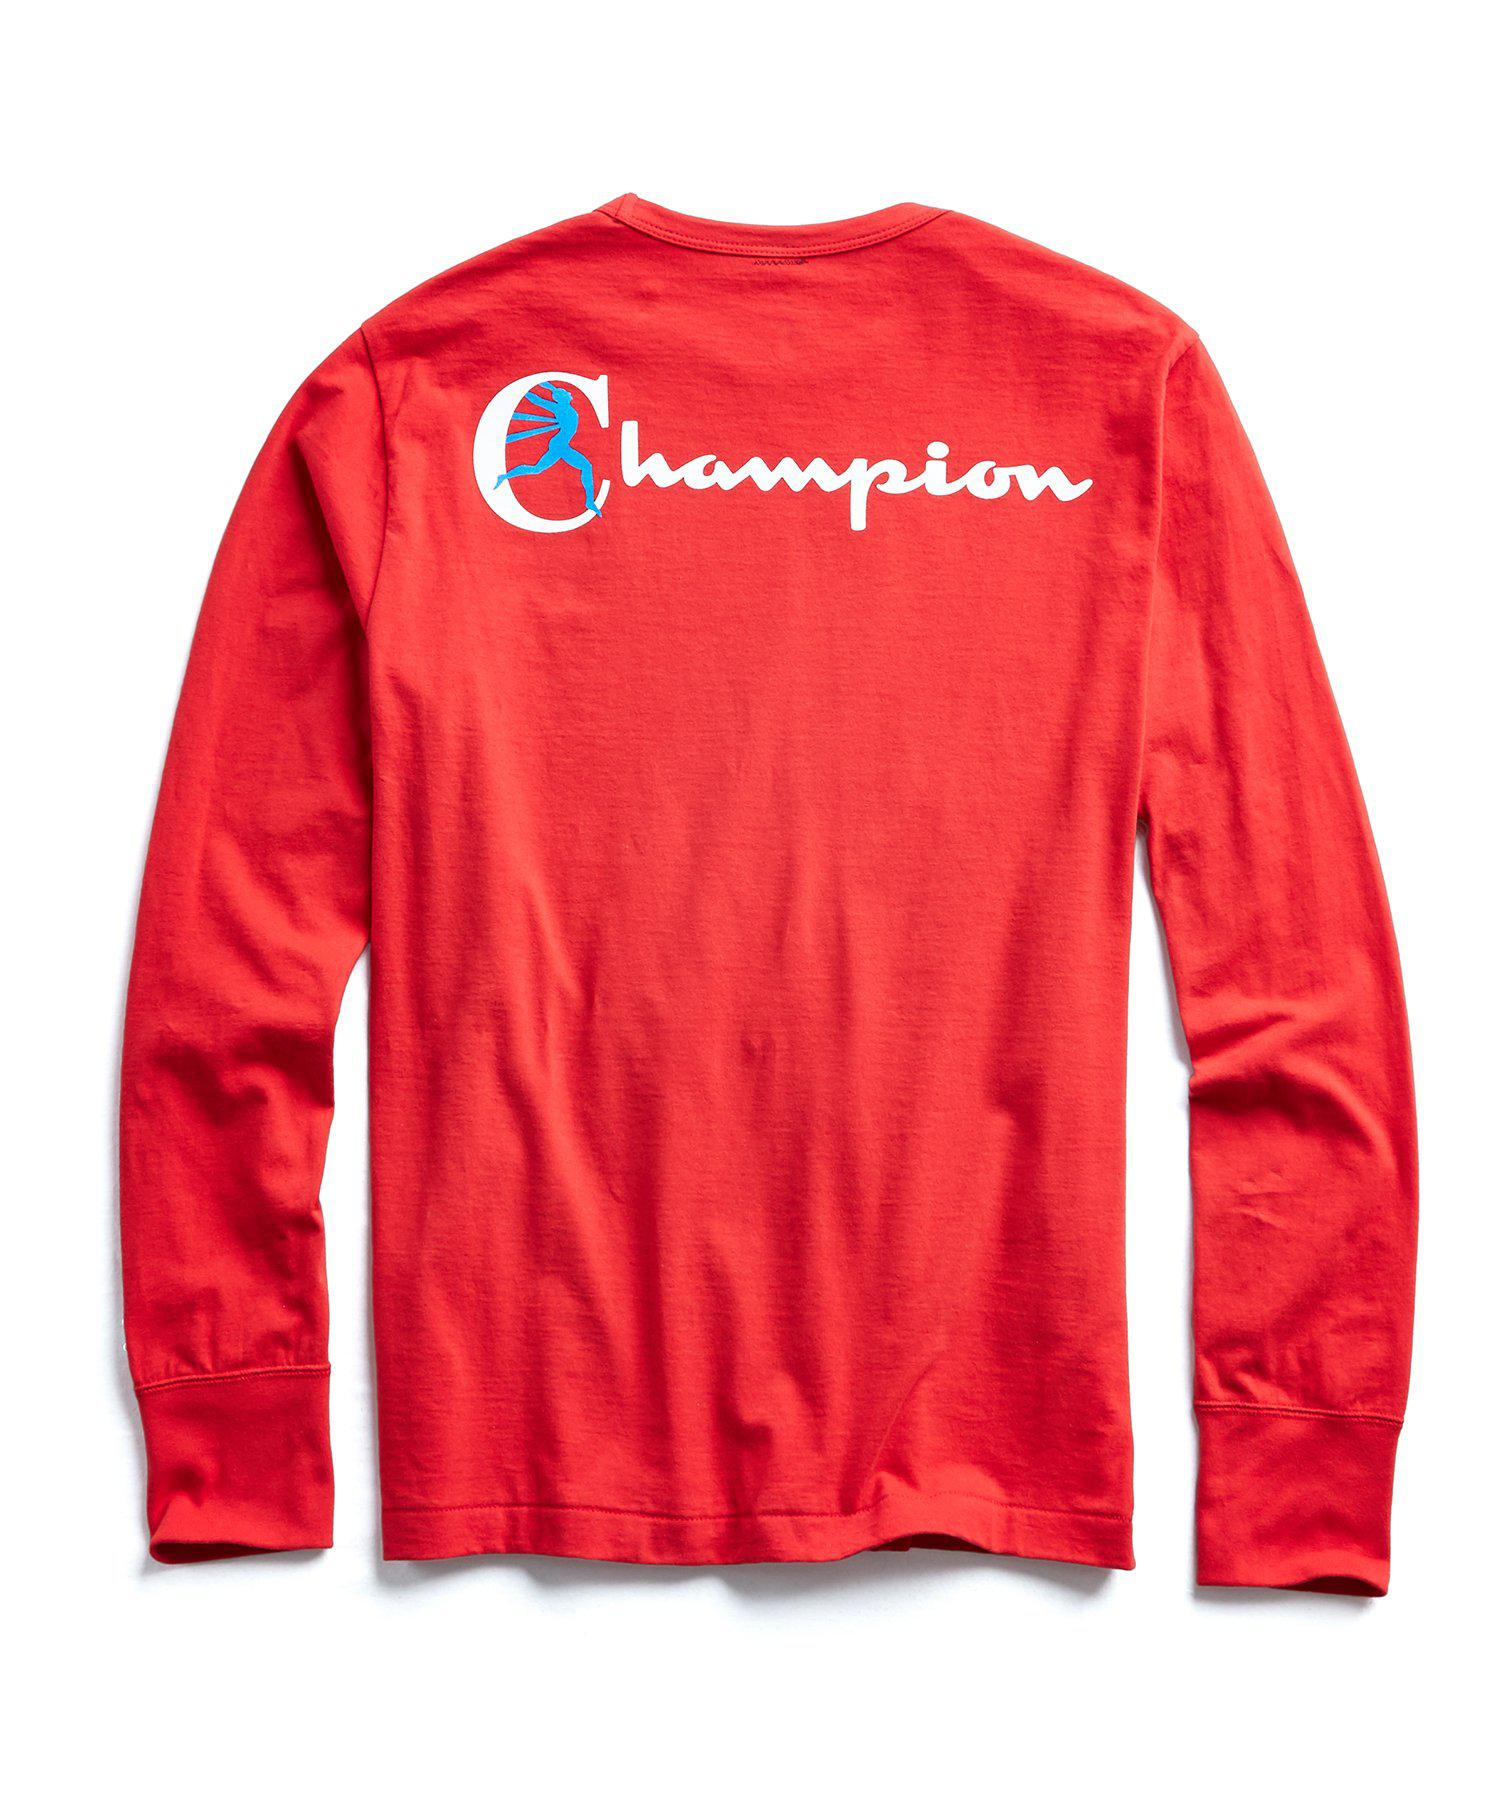 c4e49411f Lyst - Todd Snyder Champion Long Sleeve Back Graphic In Red in Red ...